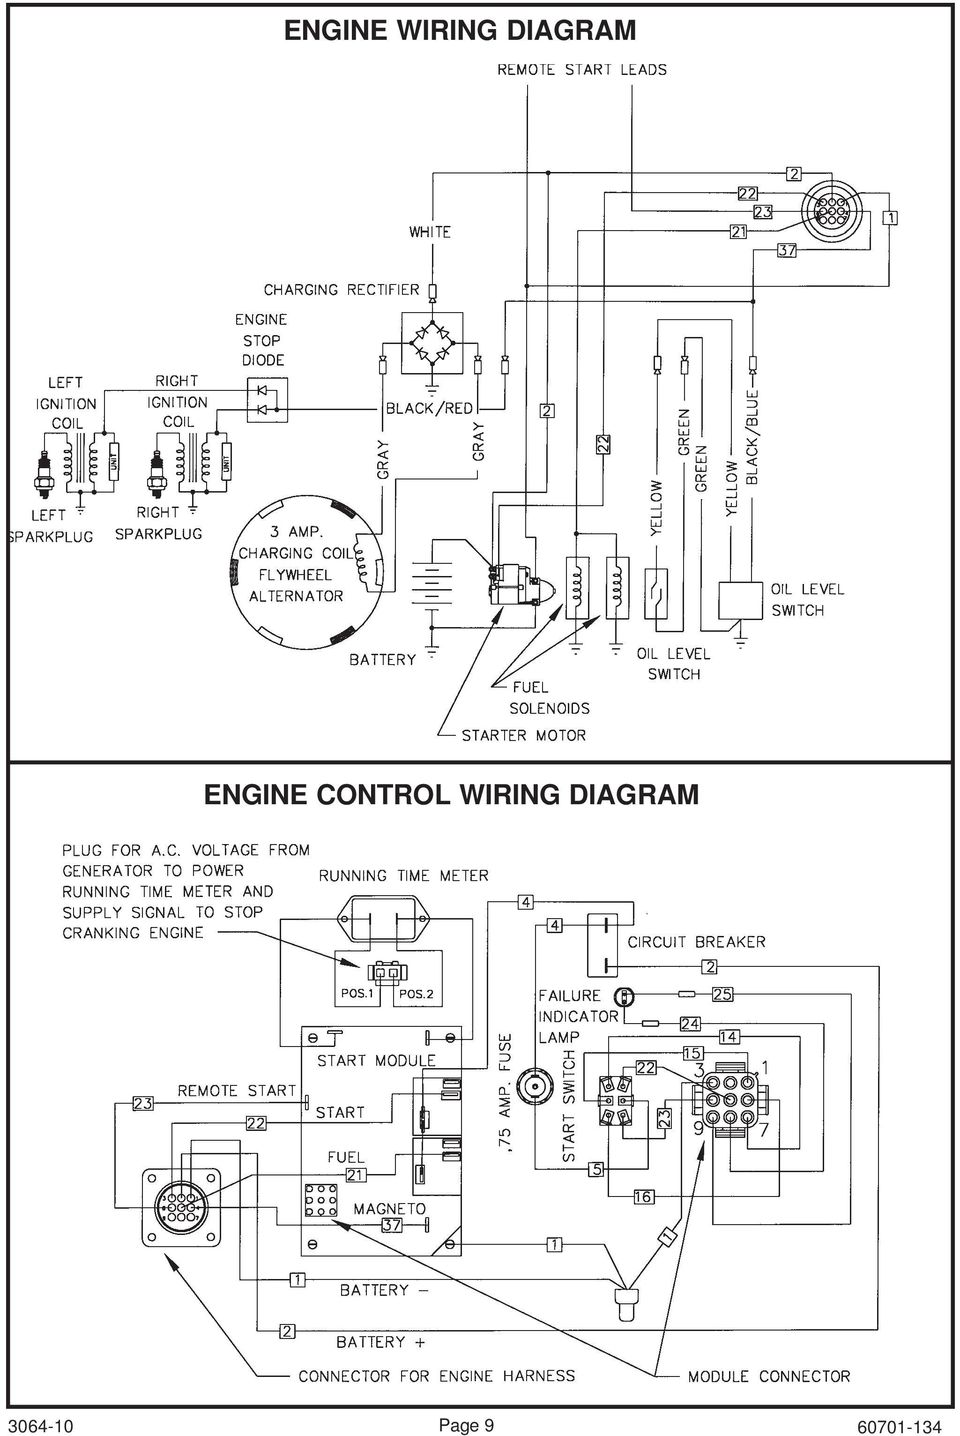 Pss10h B Pss12h A Illustrated Parts Lists Pdf Robin Subaru Generator Wiring Diagram 10 Assembly Ref Qty Description Terminal Box Adapter Cover Stator Engine Bracket Rotor Fan Bearing Diode Varistor